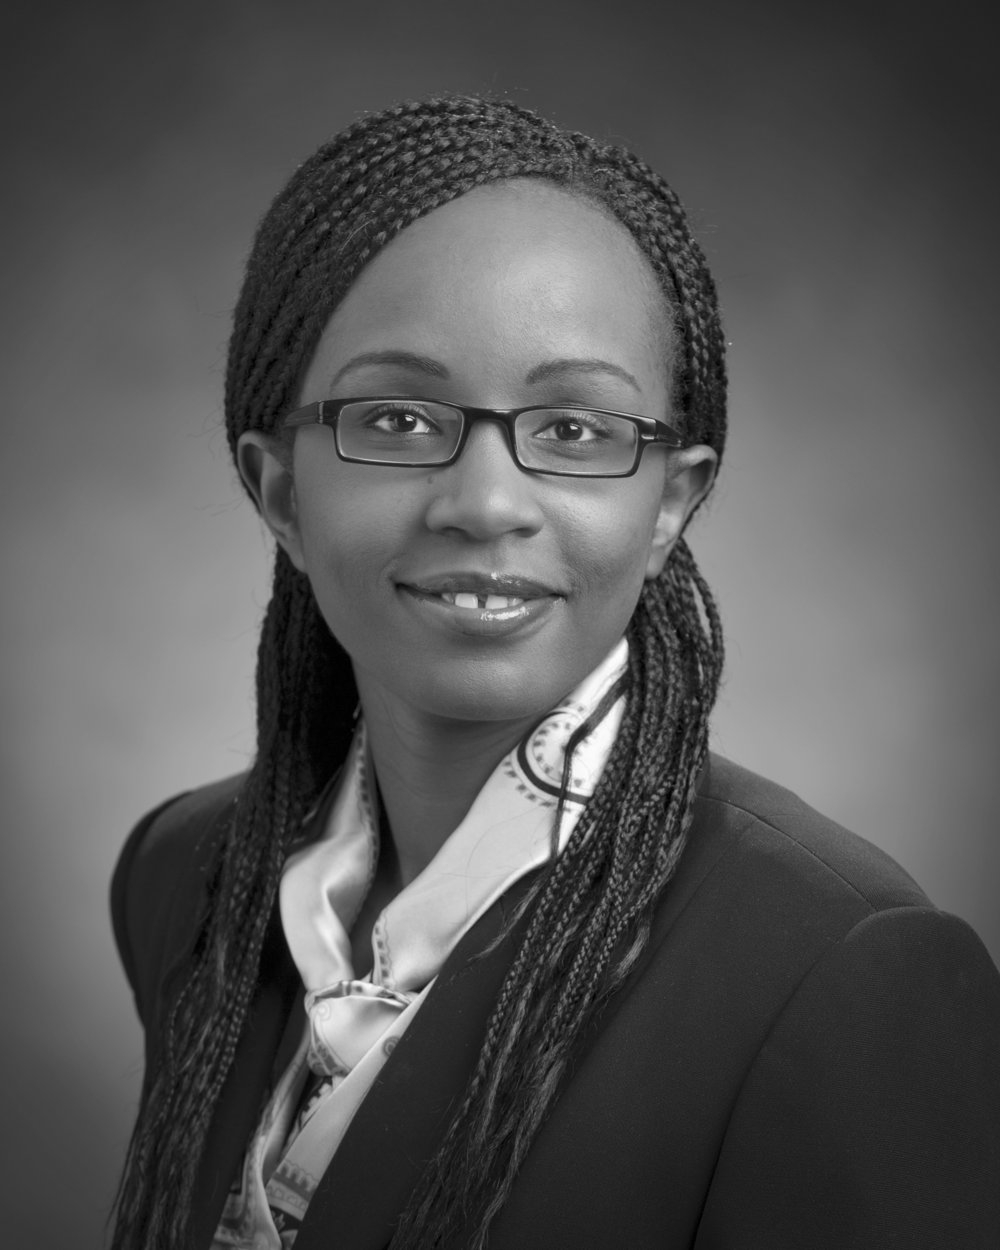 Sharon Onguti, Secretary  Southern Illinois University  Sharon Onguti, MD, MPH is an Assistant Professor of Internal Medicine at the Southern Illinois University. She also serves as an Associate Clerkship Director for Internal Medicine. She is the Secretary of SBM.